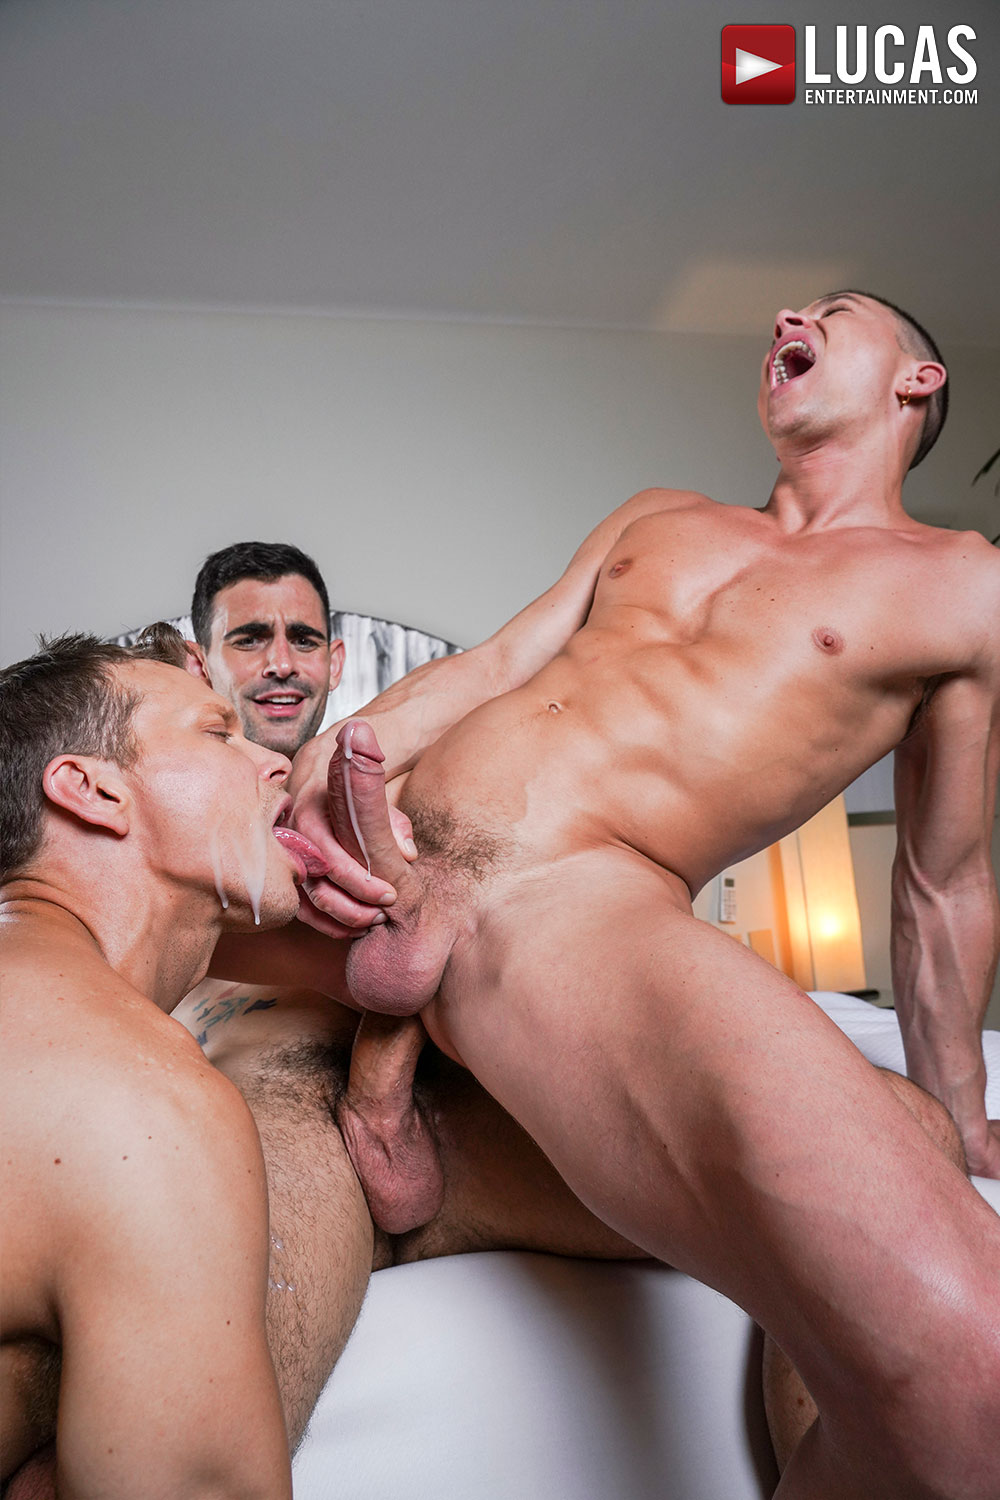 Lucas Entertainment – Ruslan Angelo, Ethan Chase, Max Arion